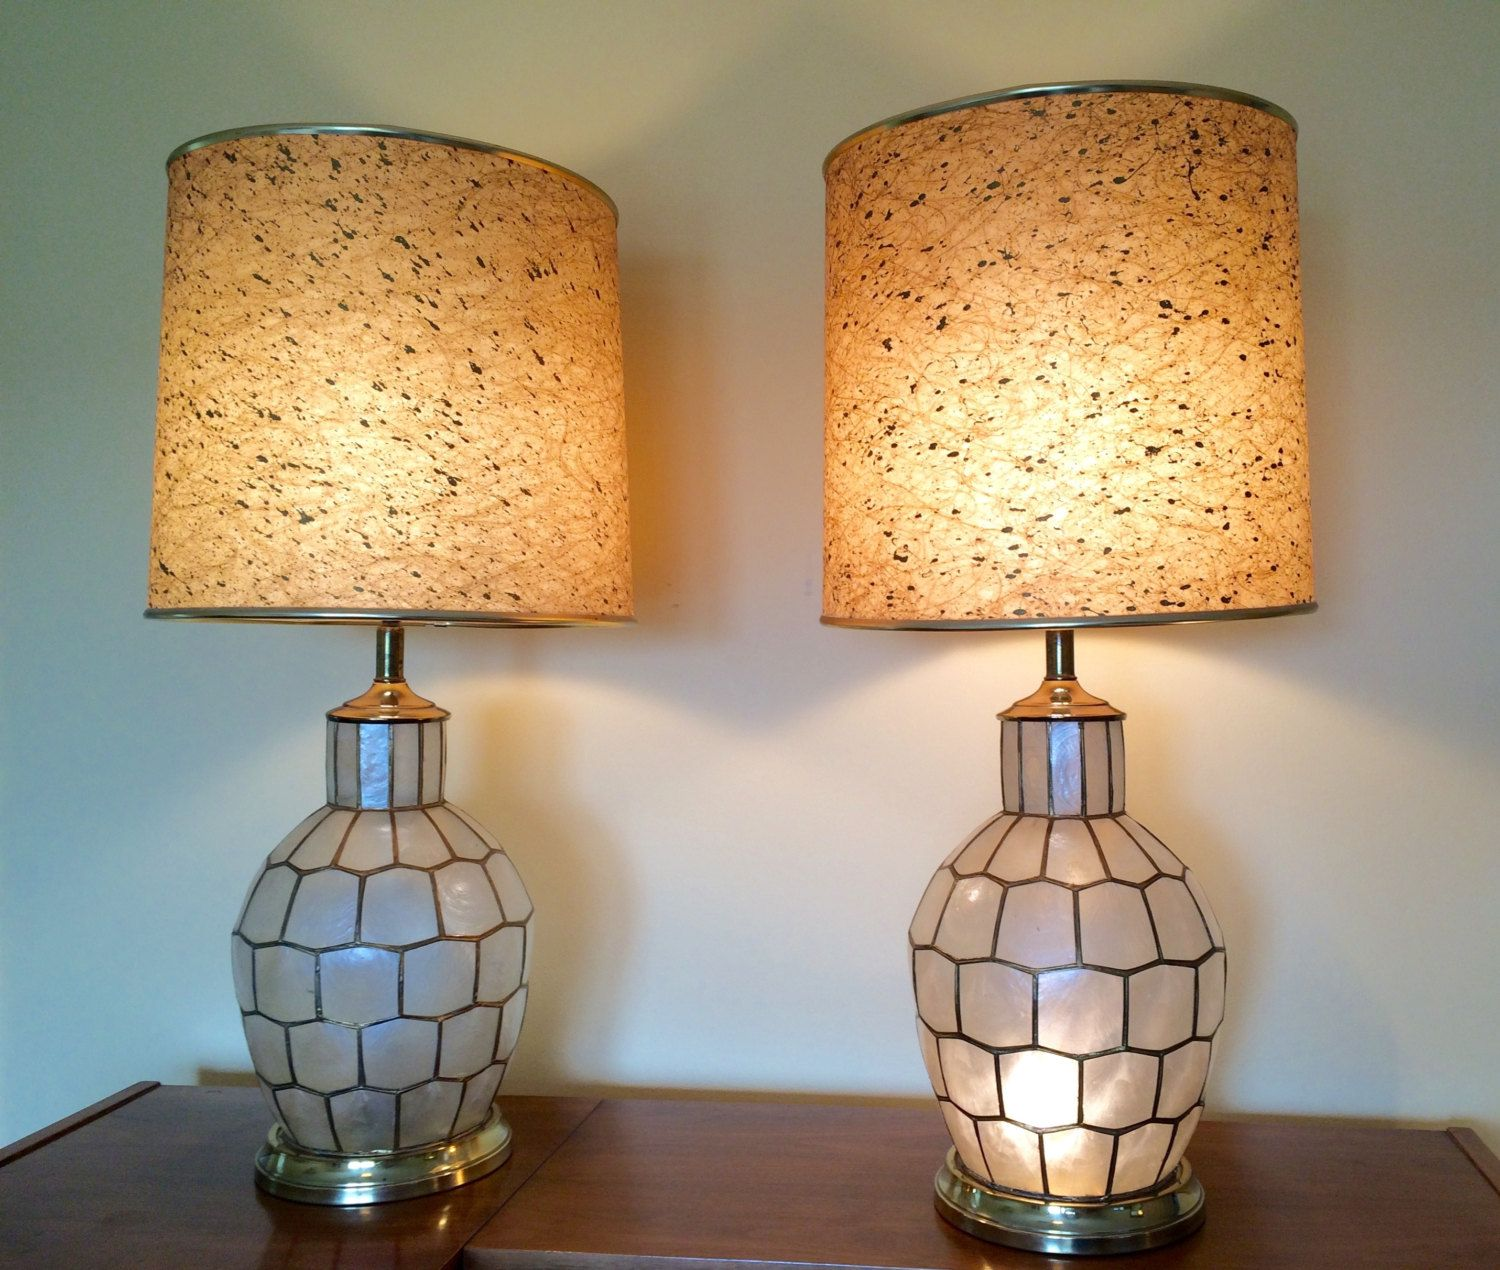 lamp lamps shell capiz guruz seashell lighting chandeliers vintage shade lampshade shells chandelier buy